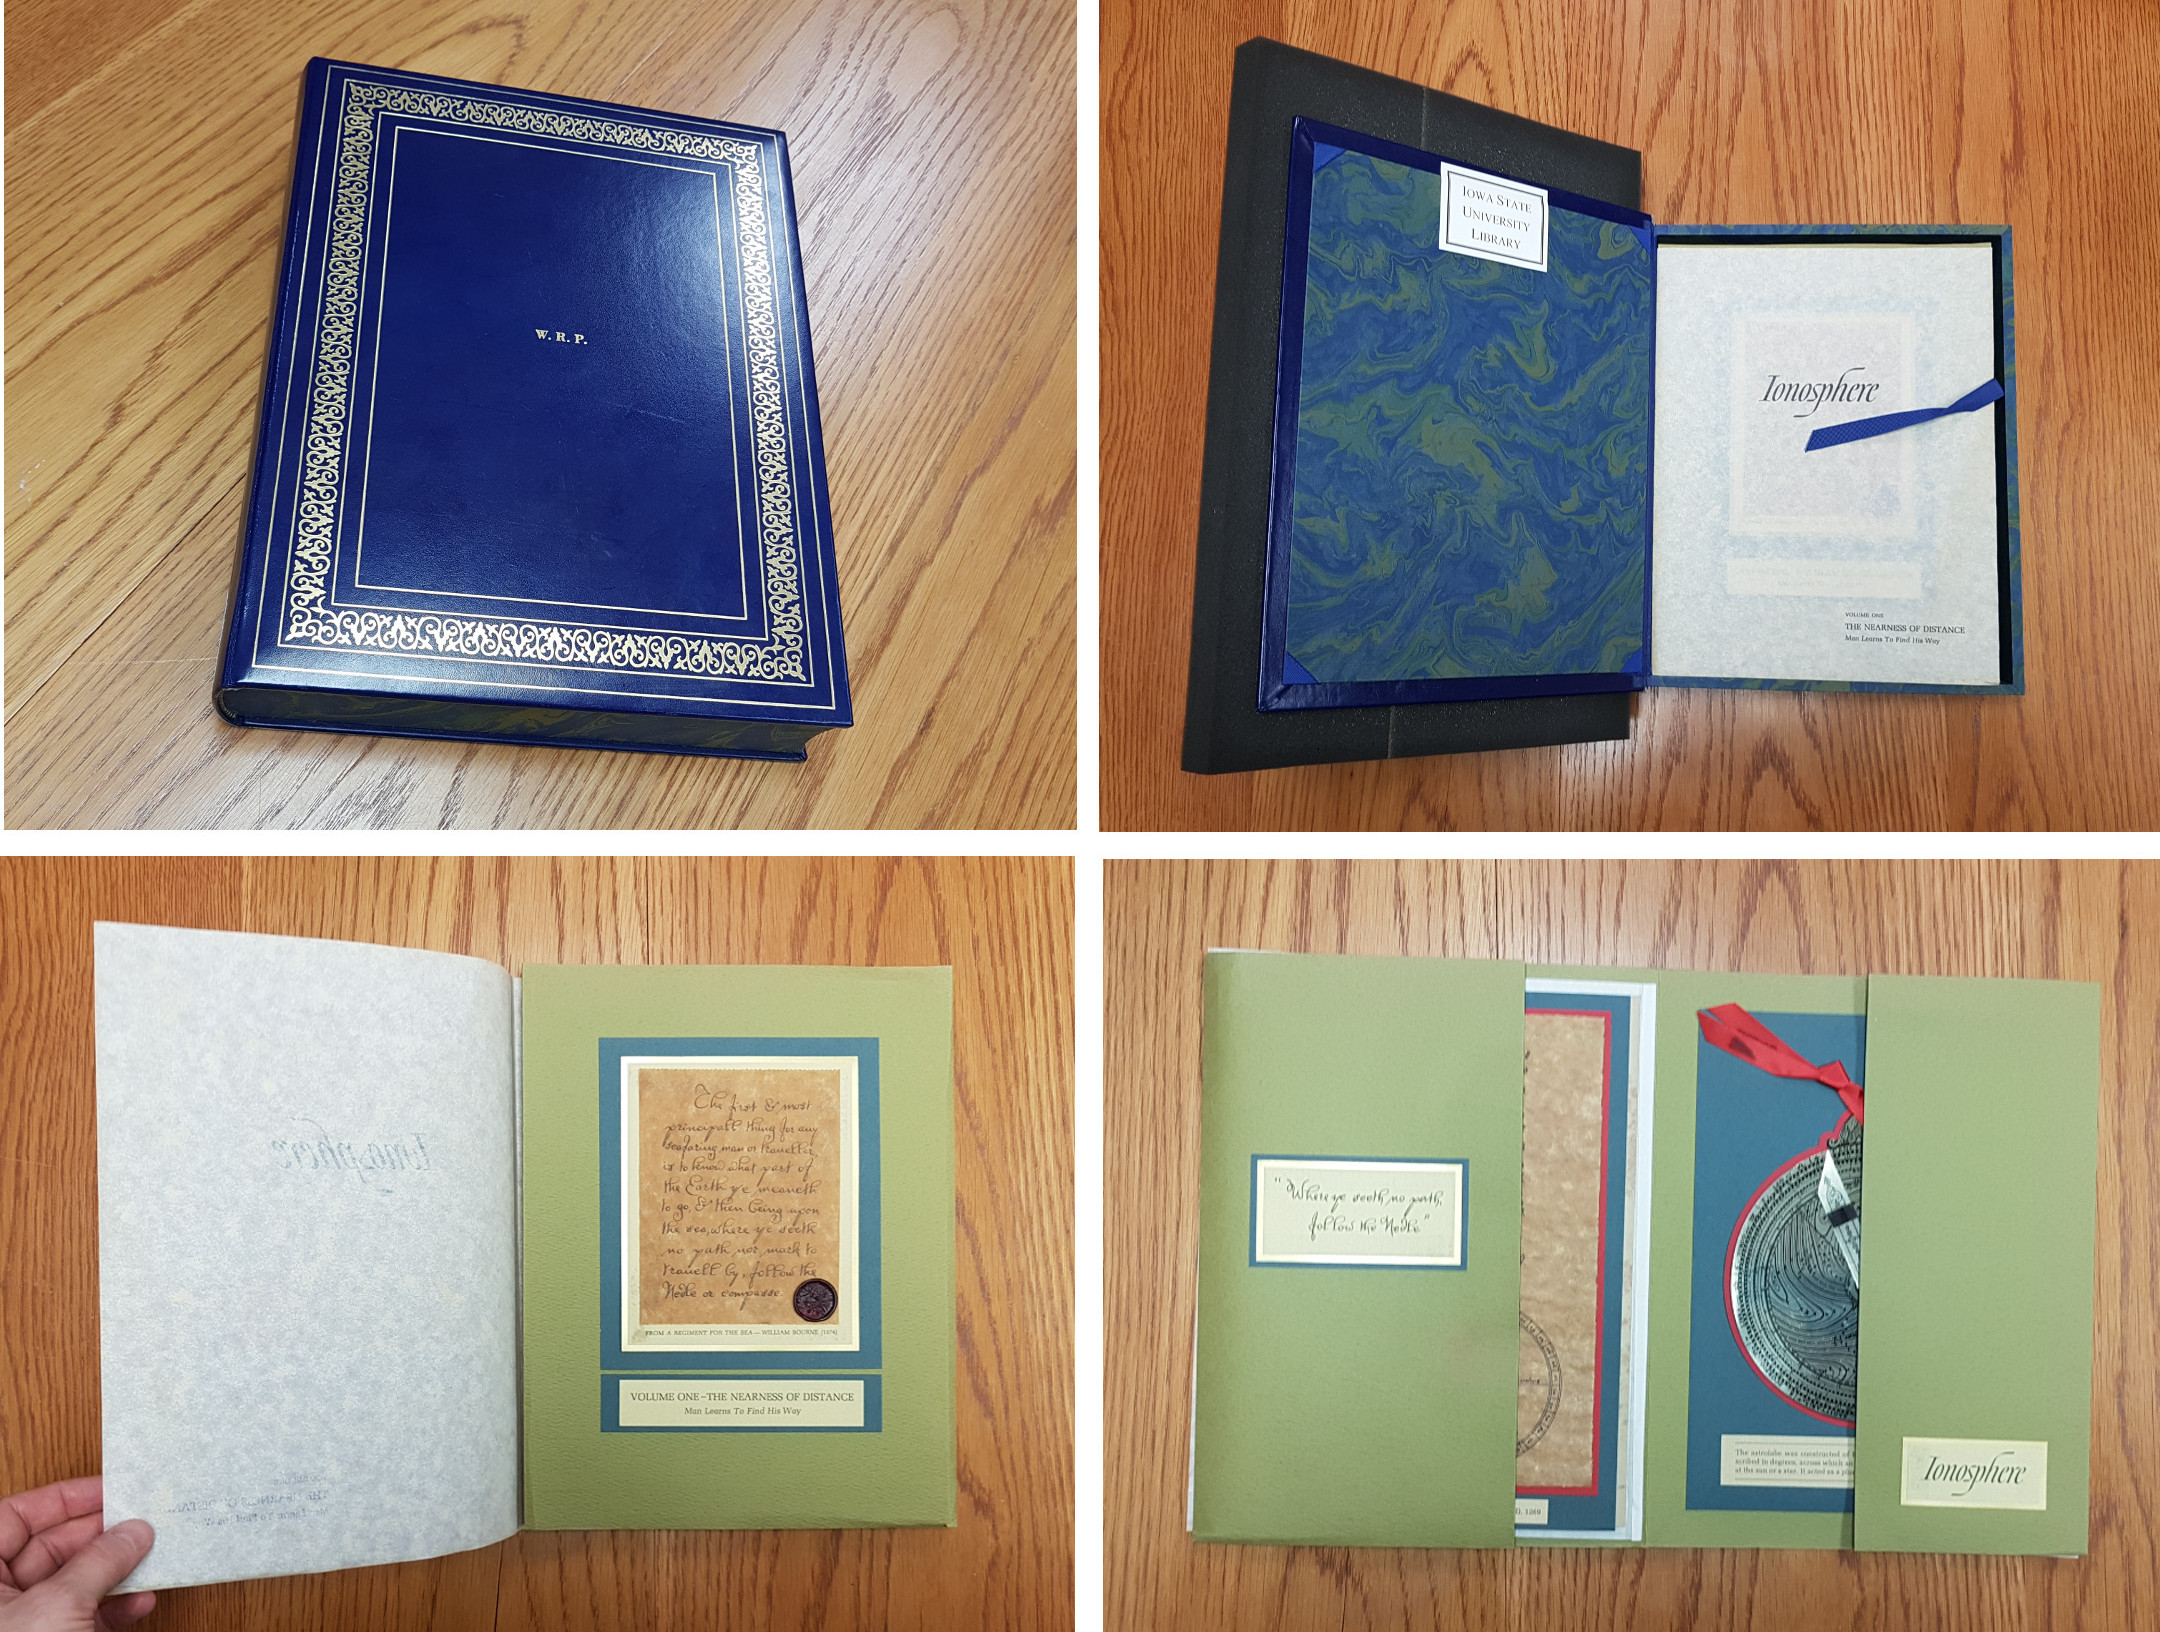 A montage of four photos showing the book-box closed, opened to reveal folders inside, and a folder closed and then opened.